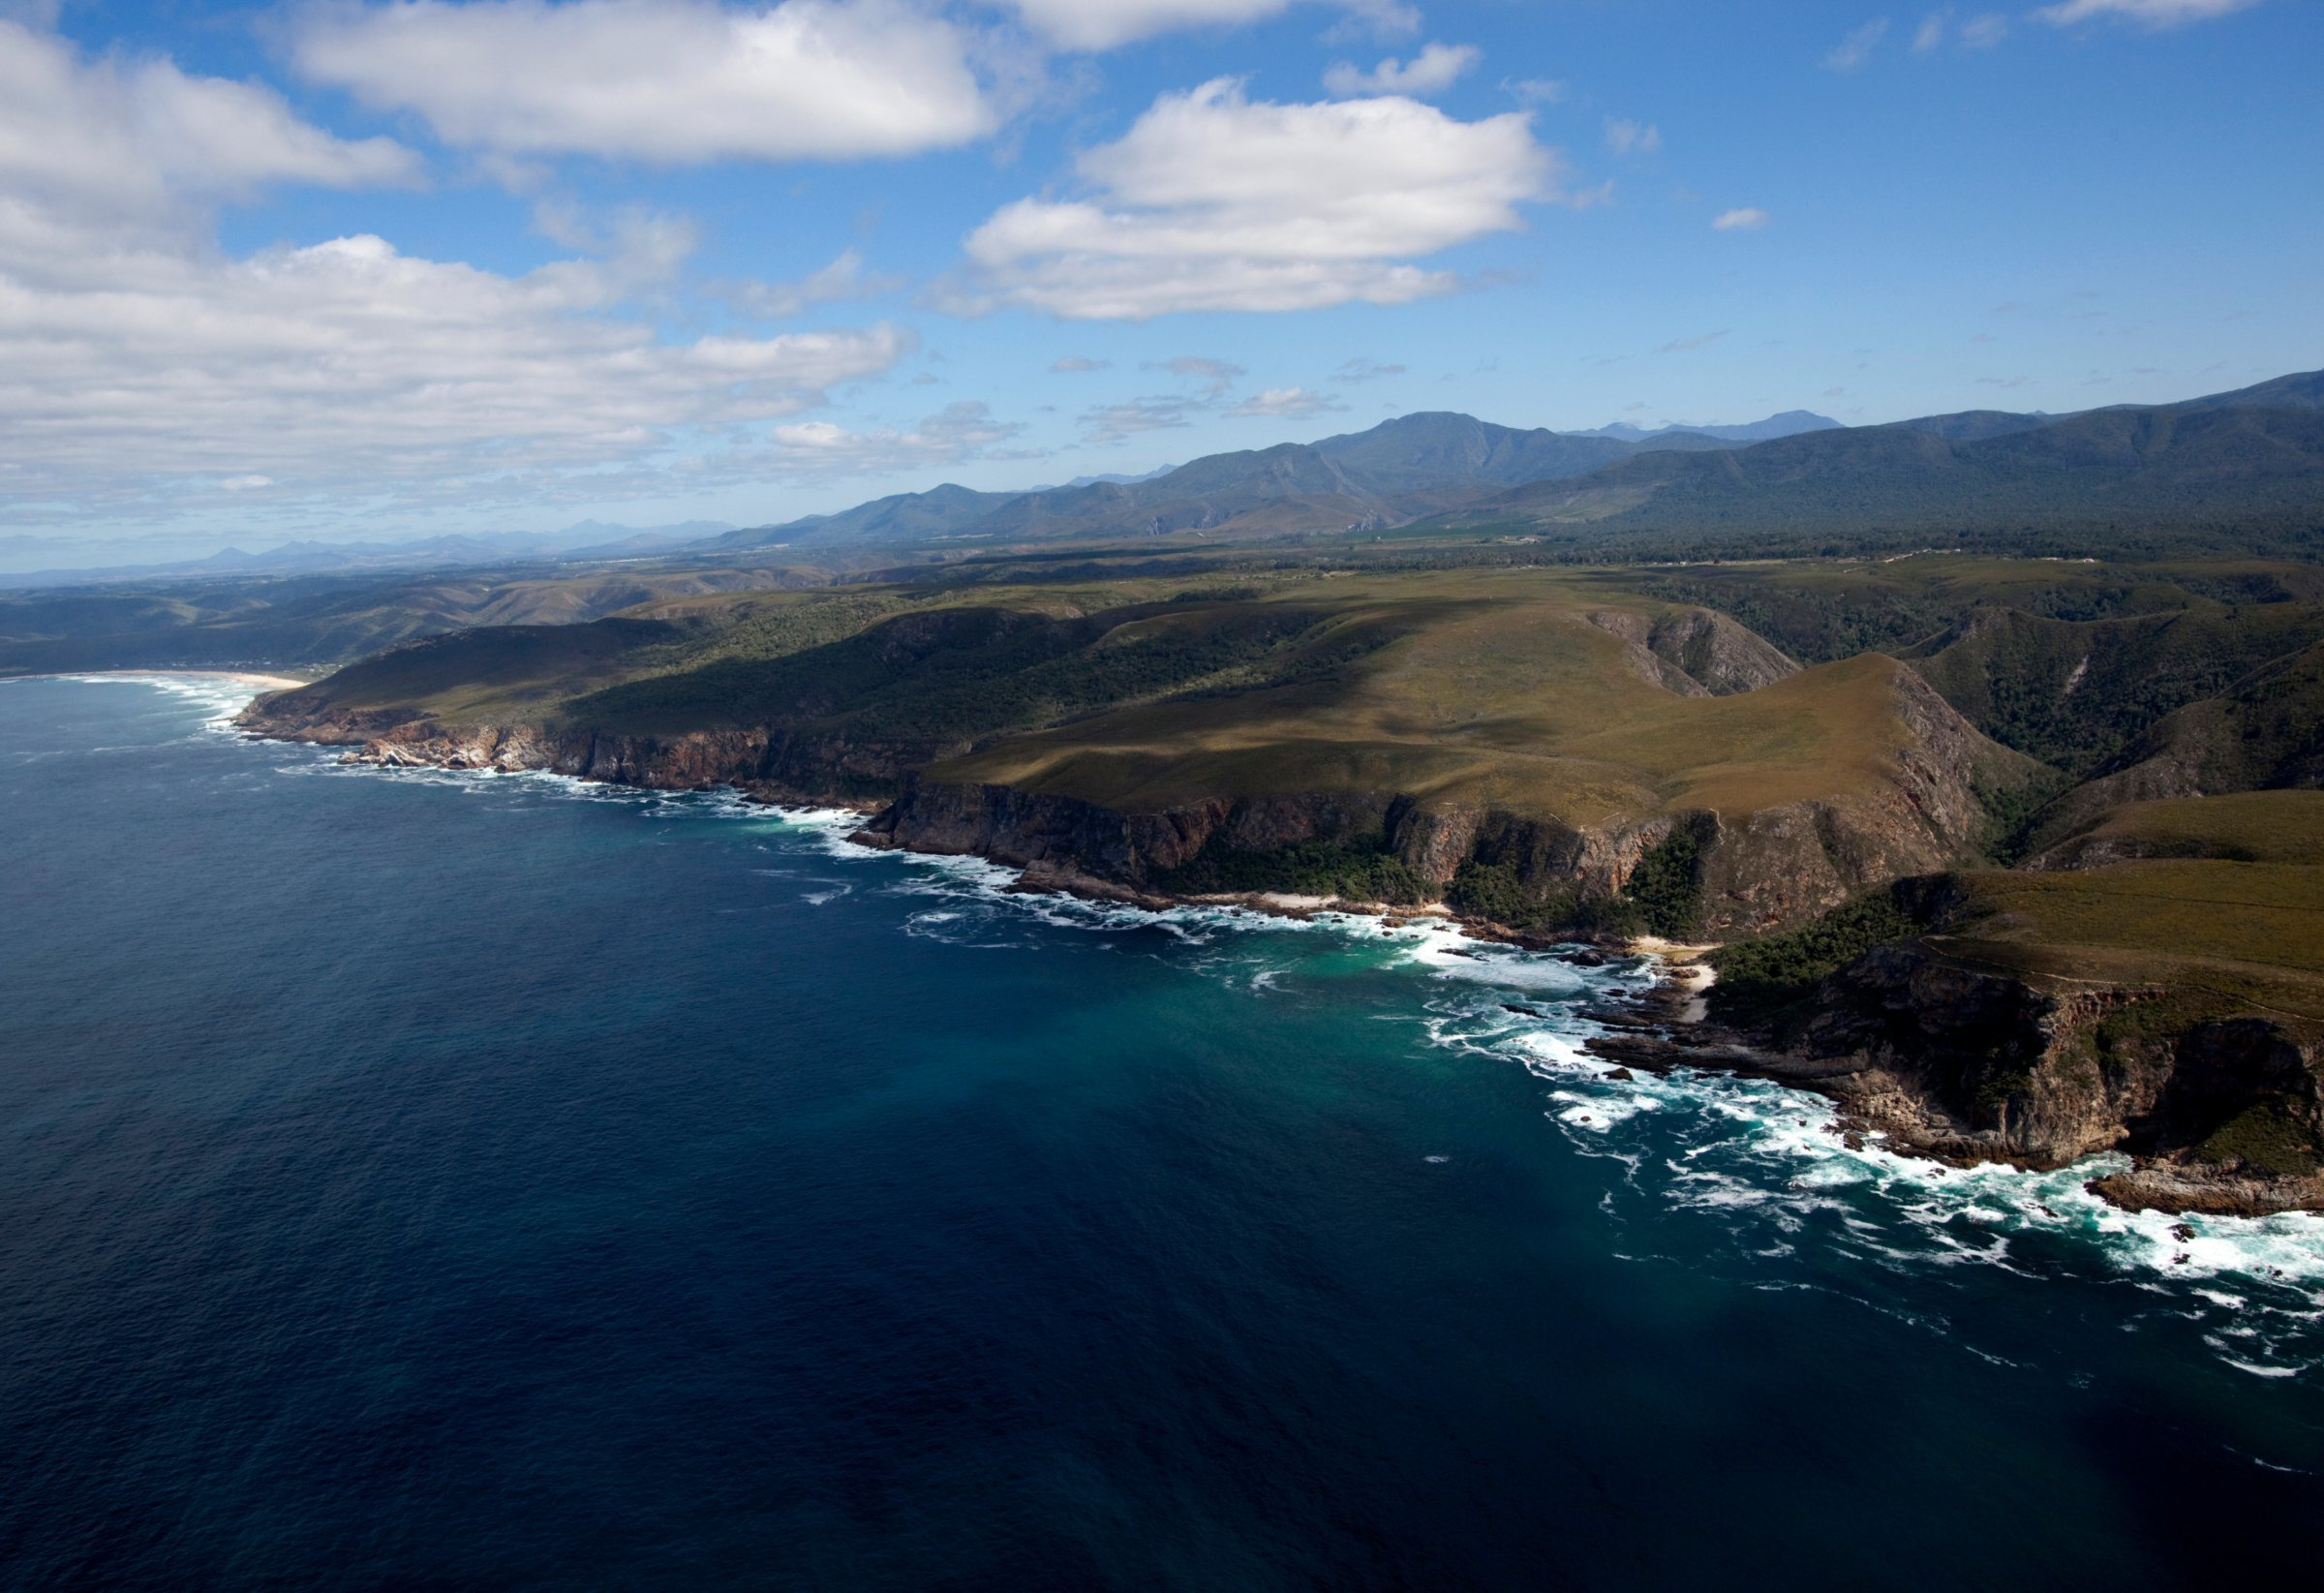 12-Day Big Five, Garden Route & Cape Town - South Africa Itinerary